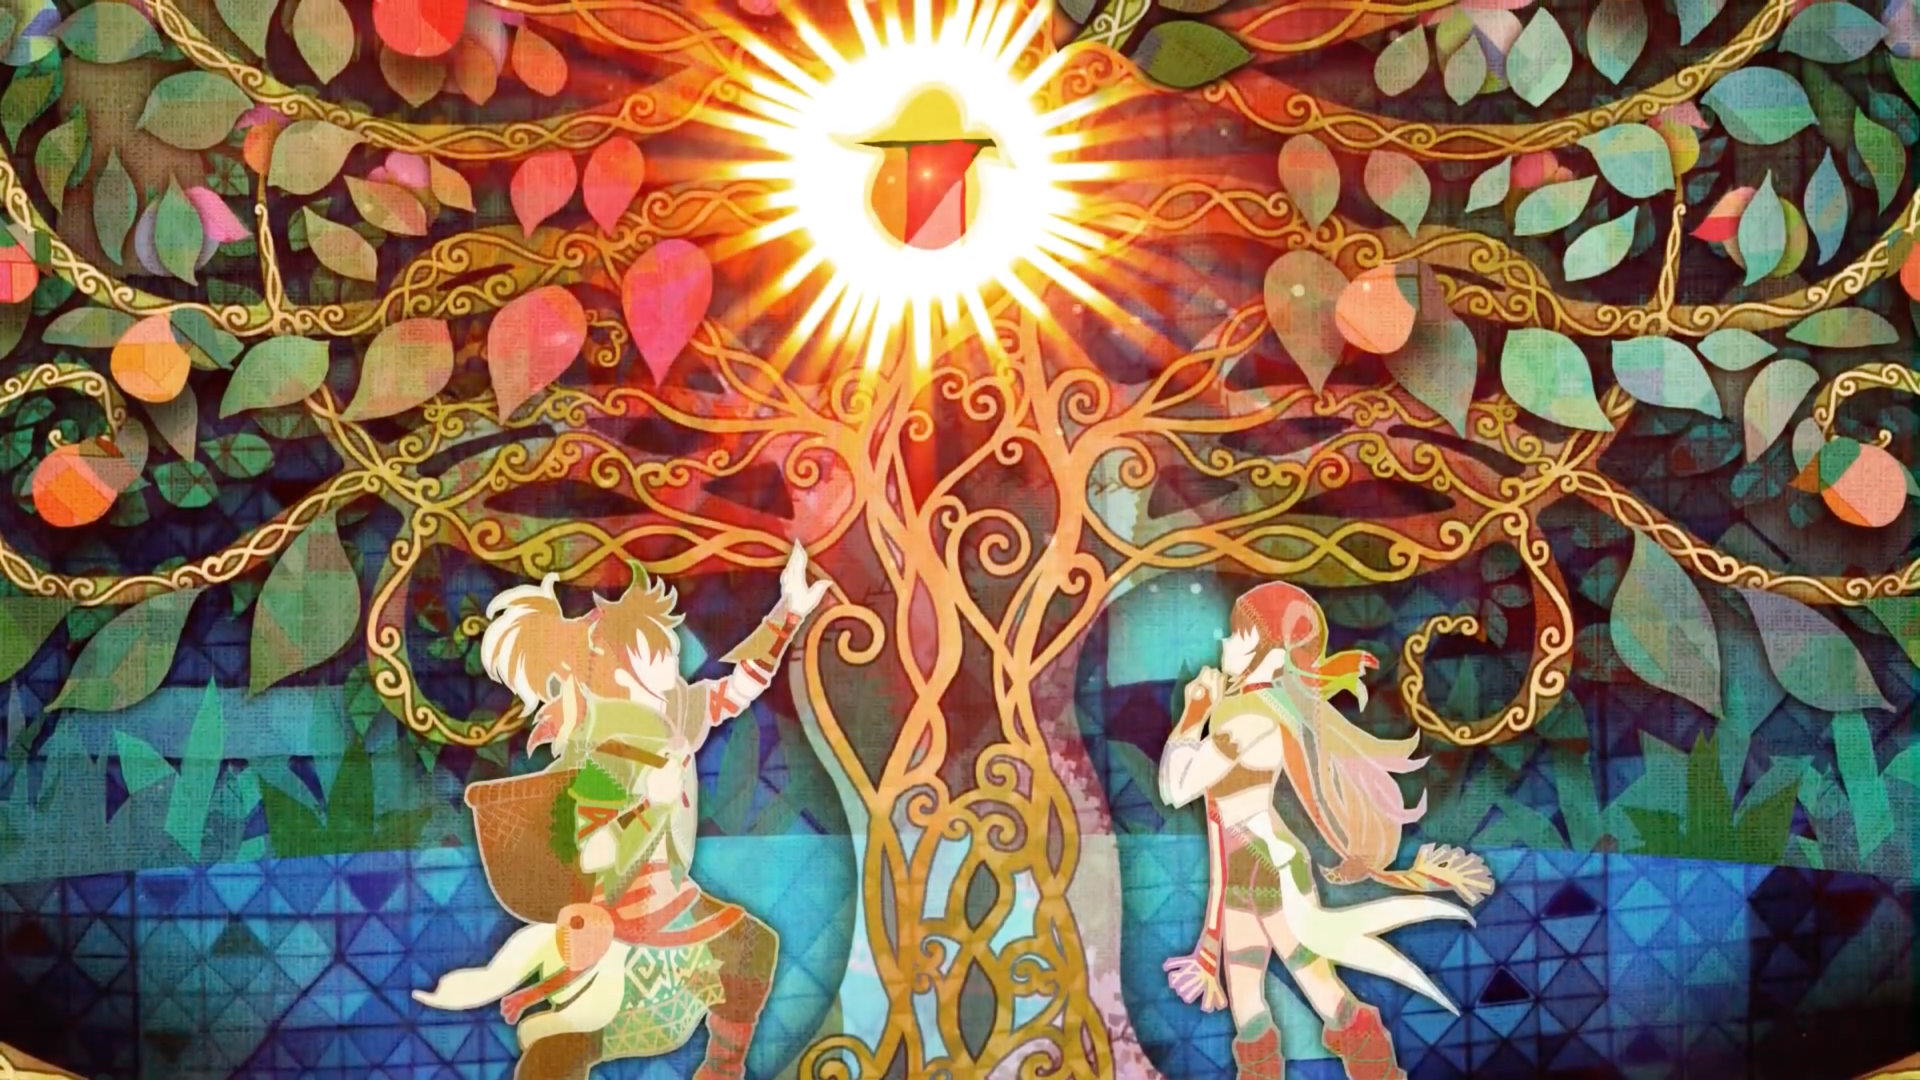 Beautiful art in Echoes of Mana